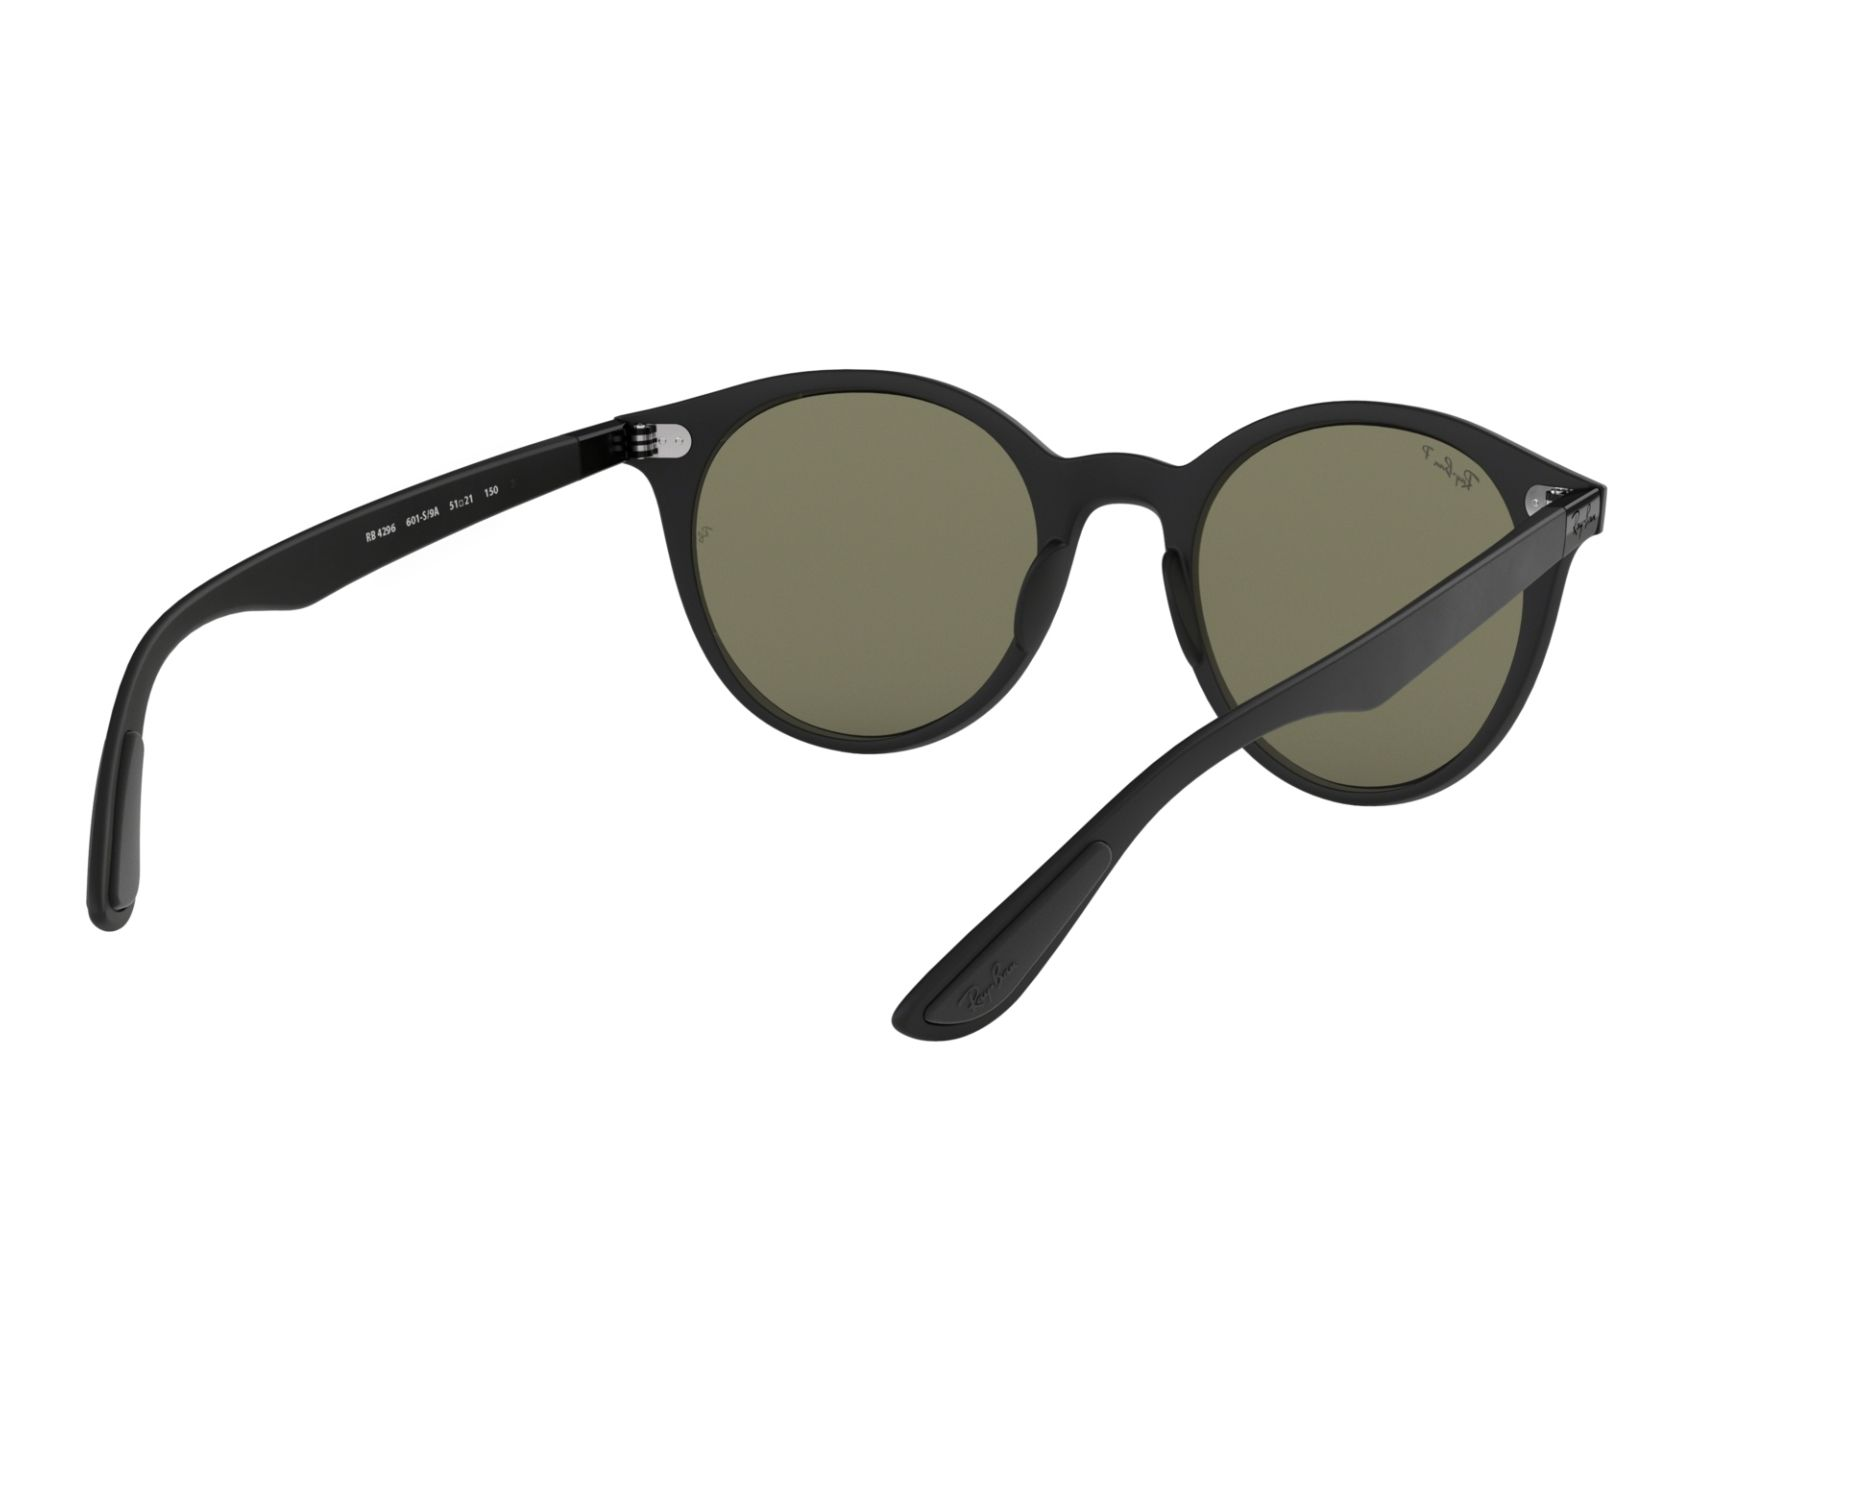 97ad6600d9 Sunglasses Ray-Ban RB-4296 601S9A 51-21 Black 360 degree view 8